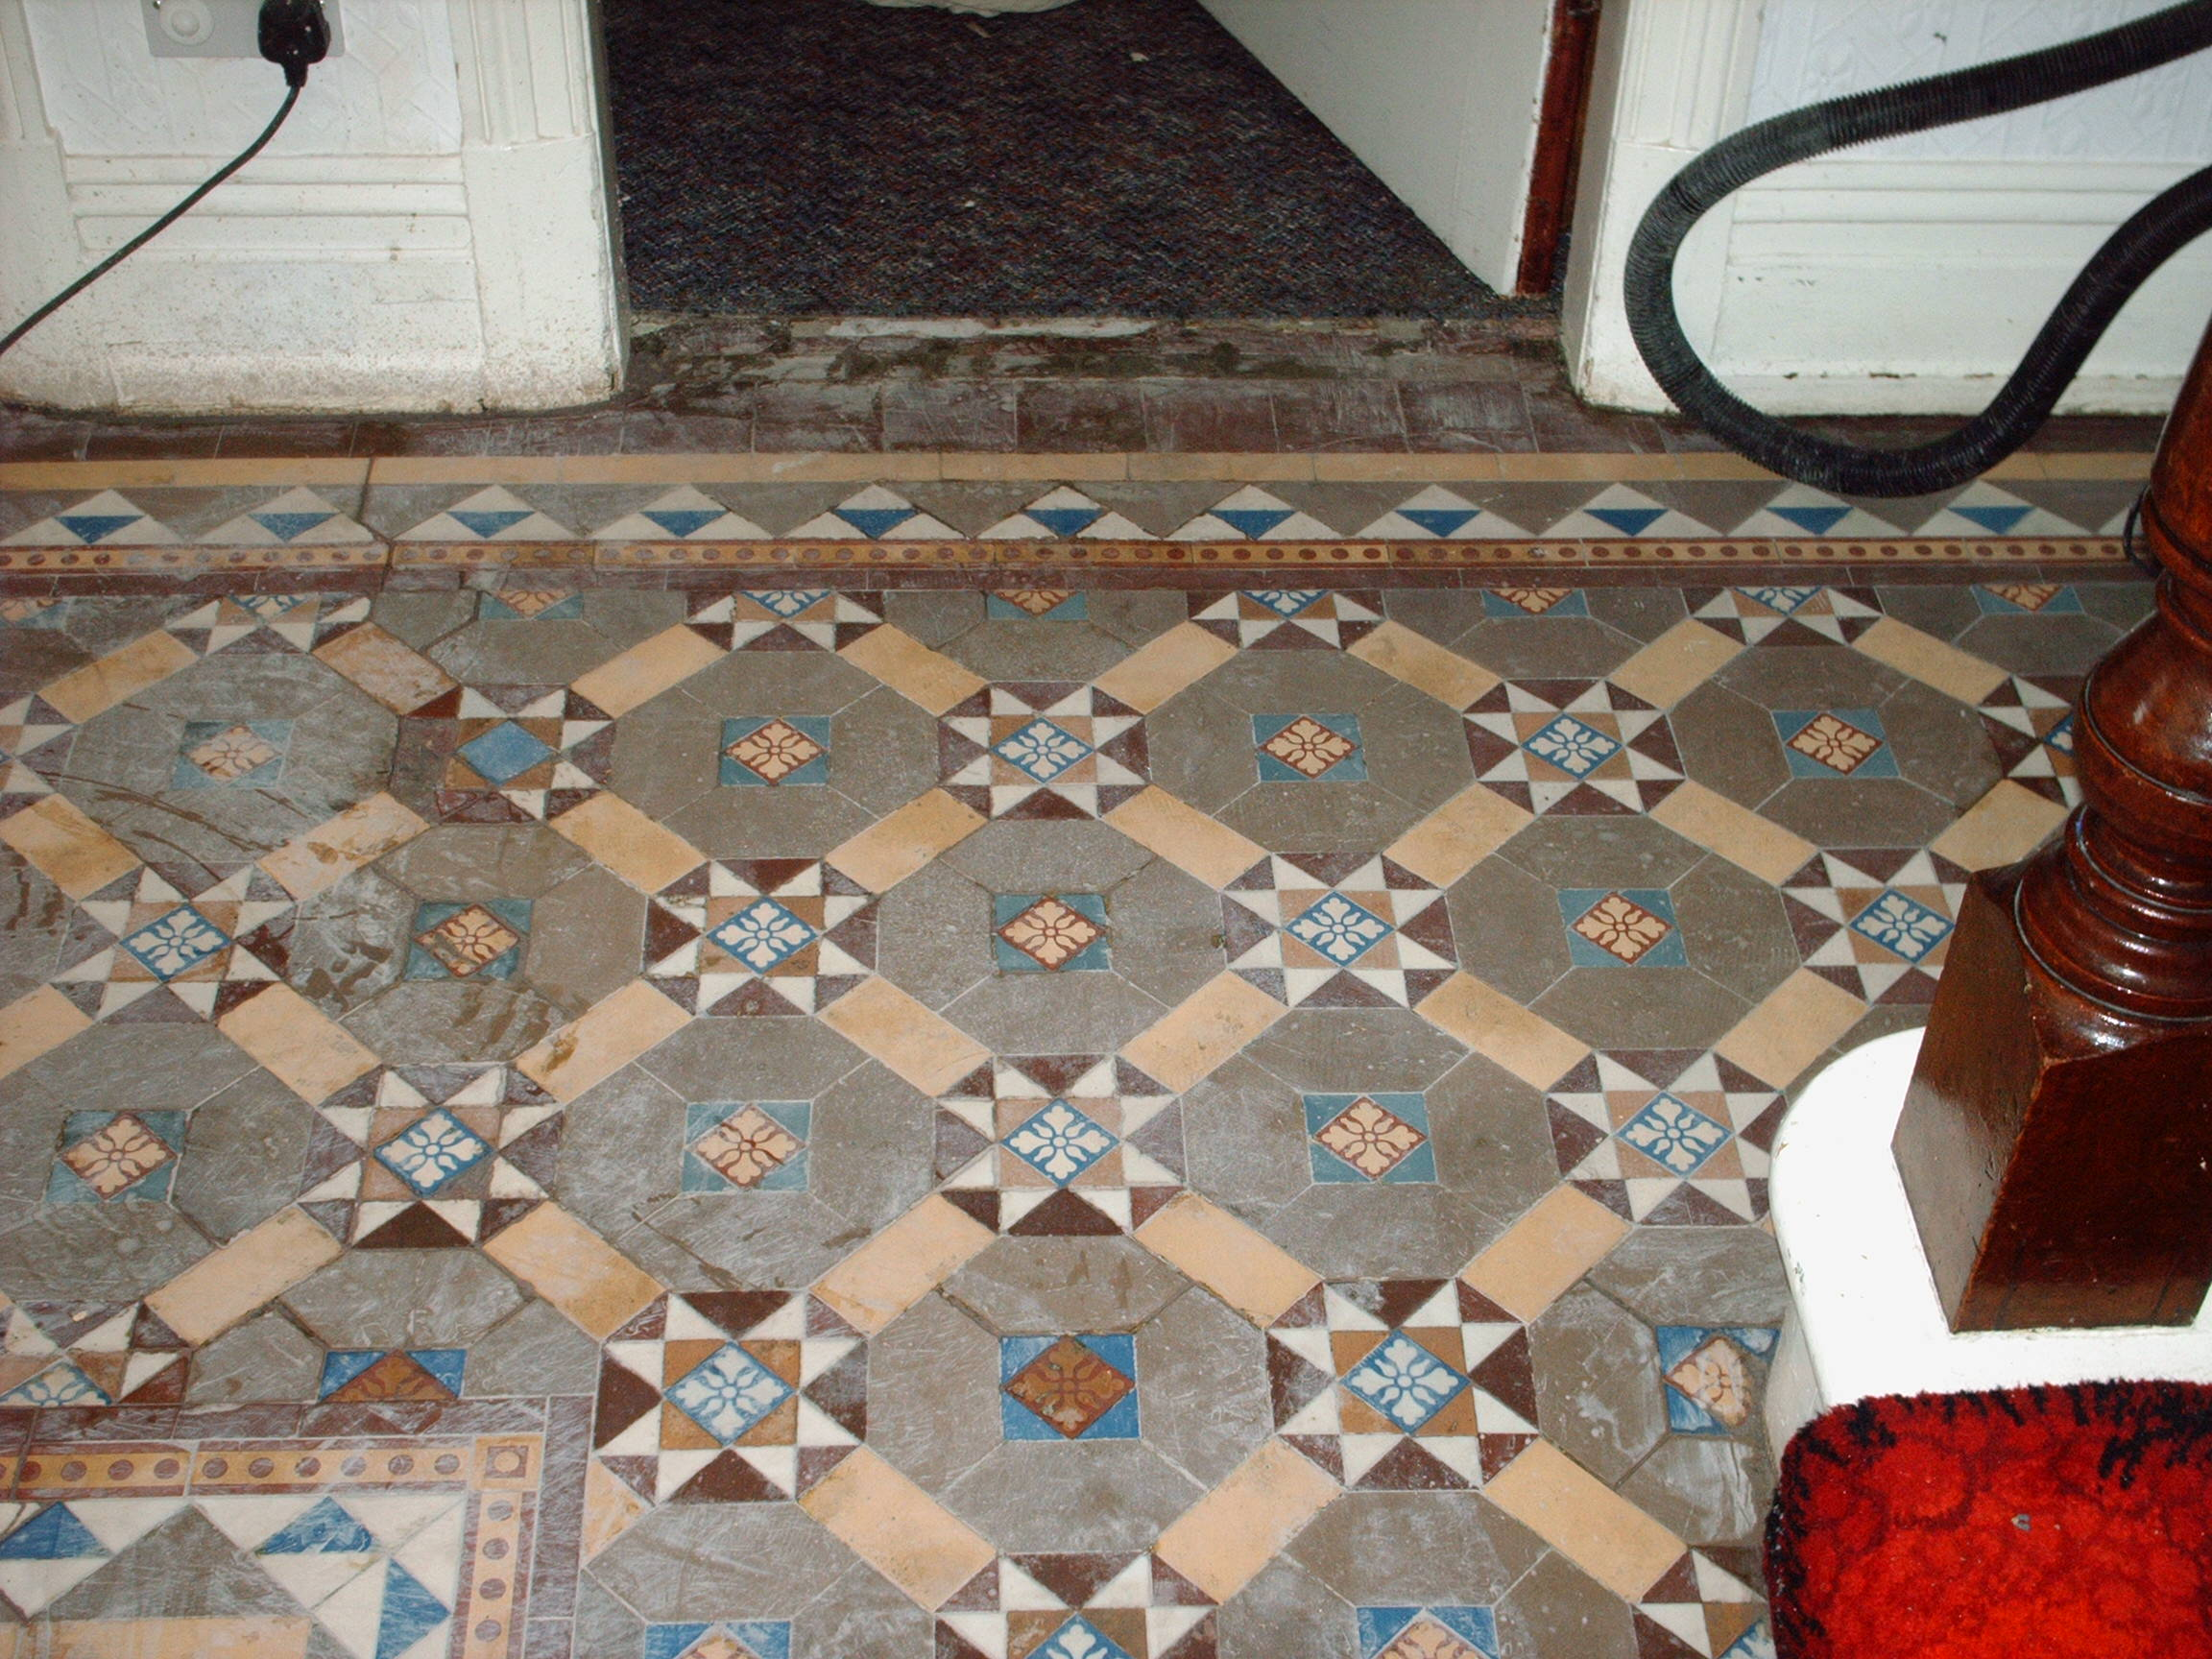 Restoring victorian floor tiles gallery home flooring design victorian floor tiles restoration image collections tile victorian floor restoration tile cleaners tile cleaning victorian floor doublecrazyfo Gallery